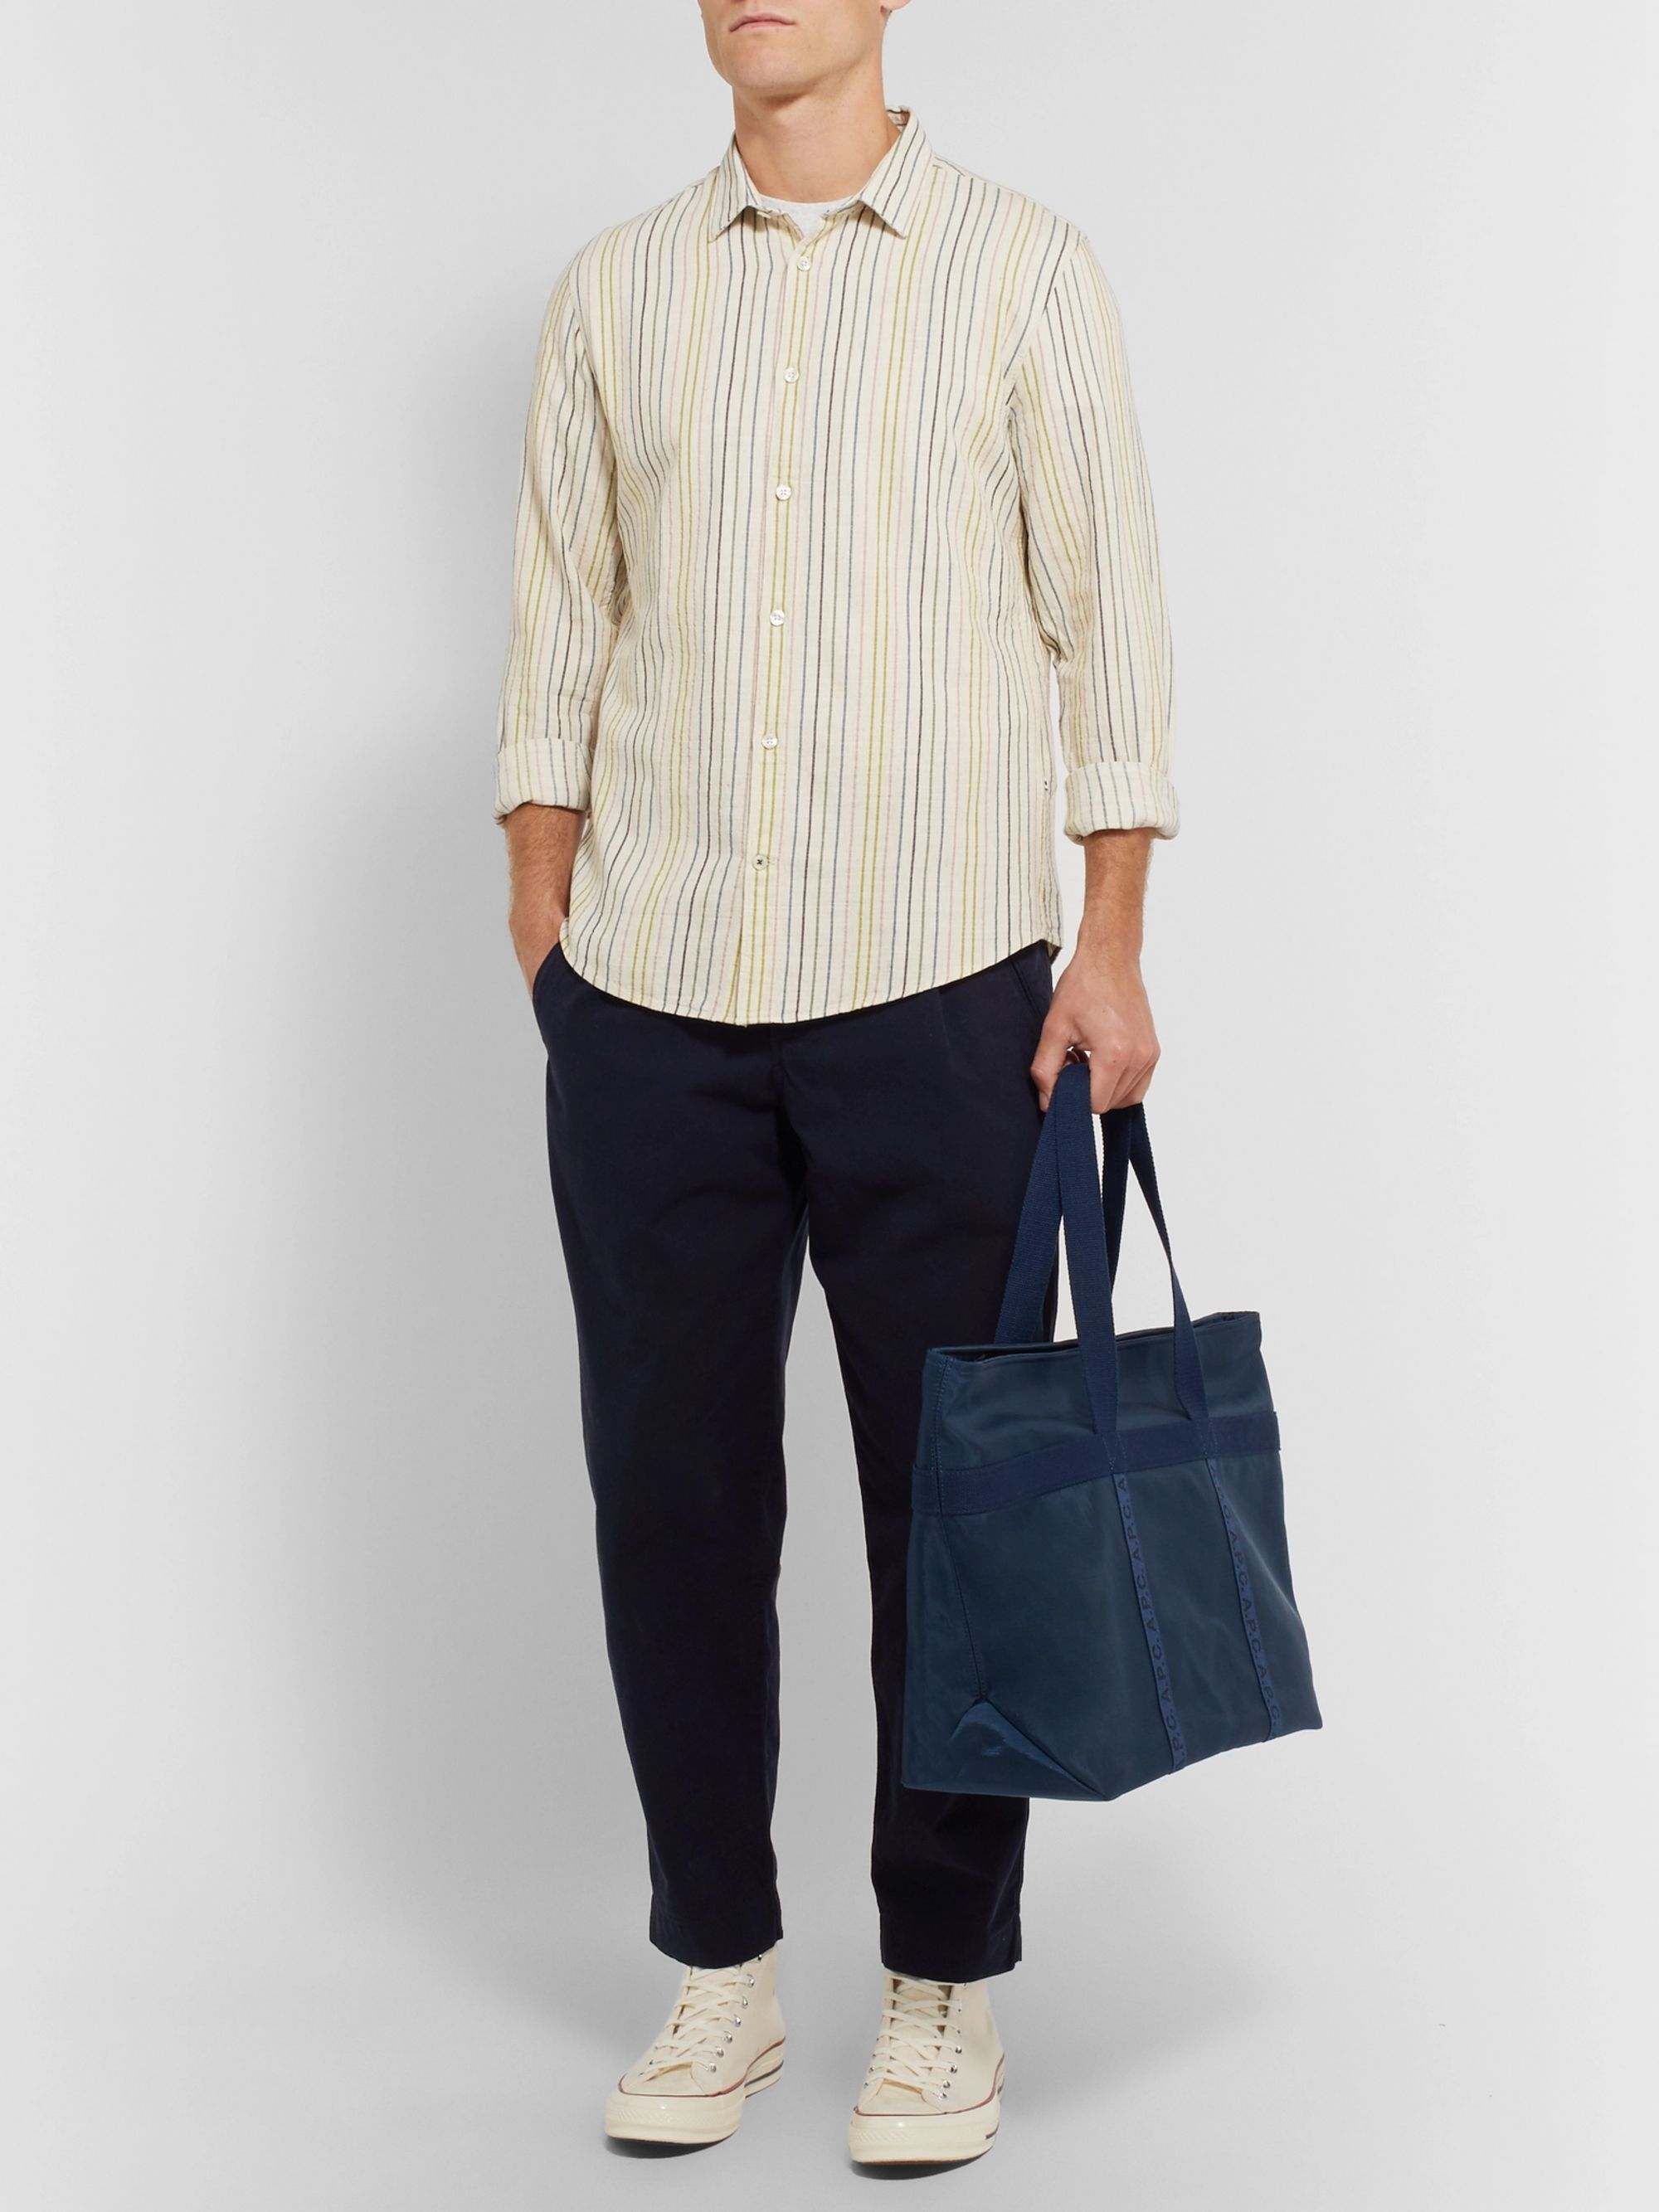 NN07 Morgan Slim-Fit Striped Cotton, Linen and Lyocell-Blend Shirt